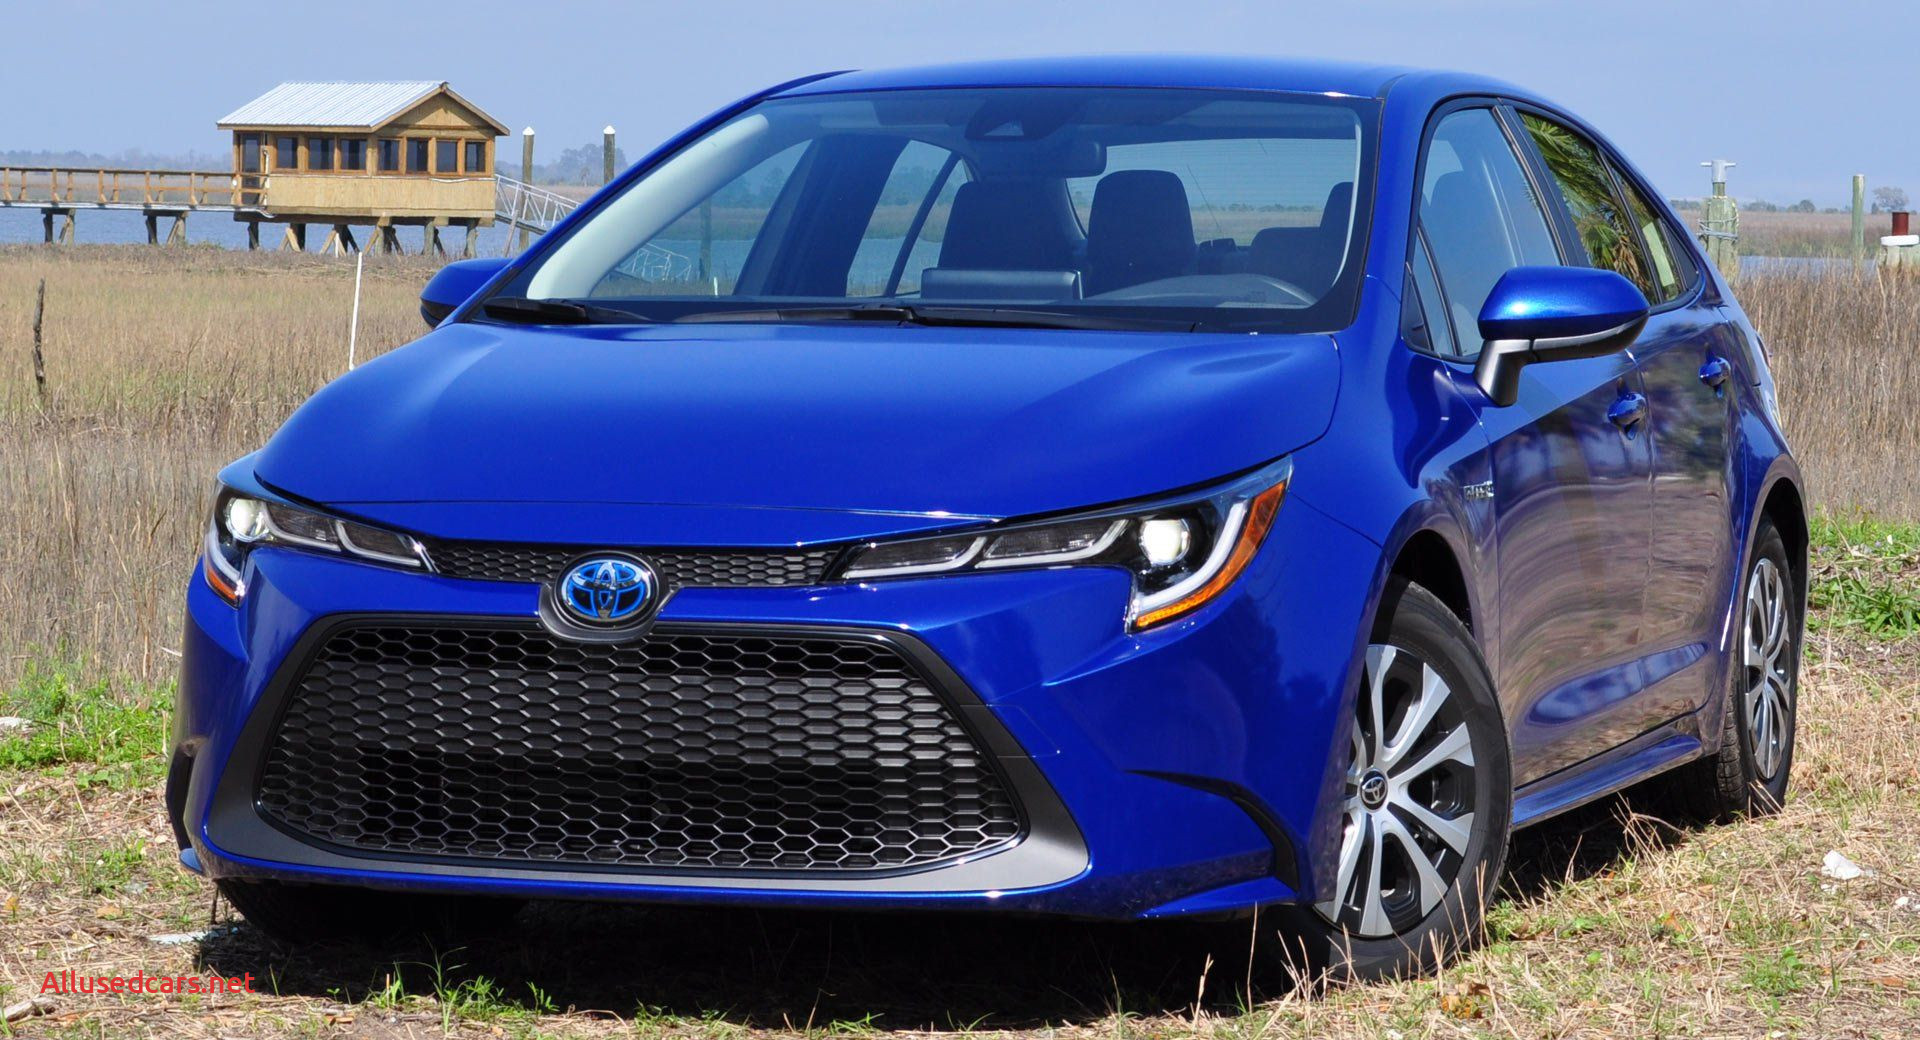 Prius Electric Elegant Driven 2020 toyota Corolla Hybrid is A Prius without the